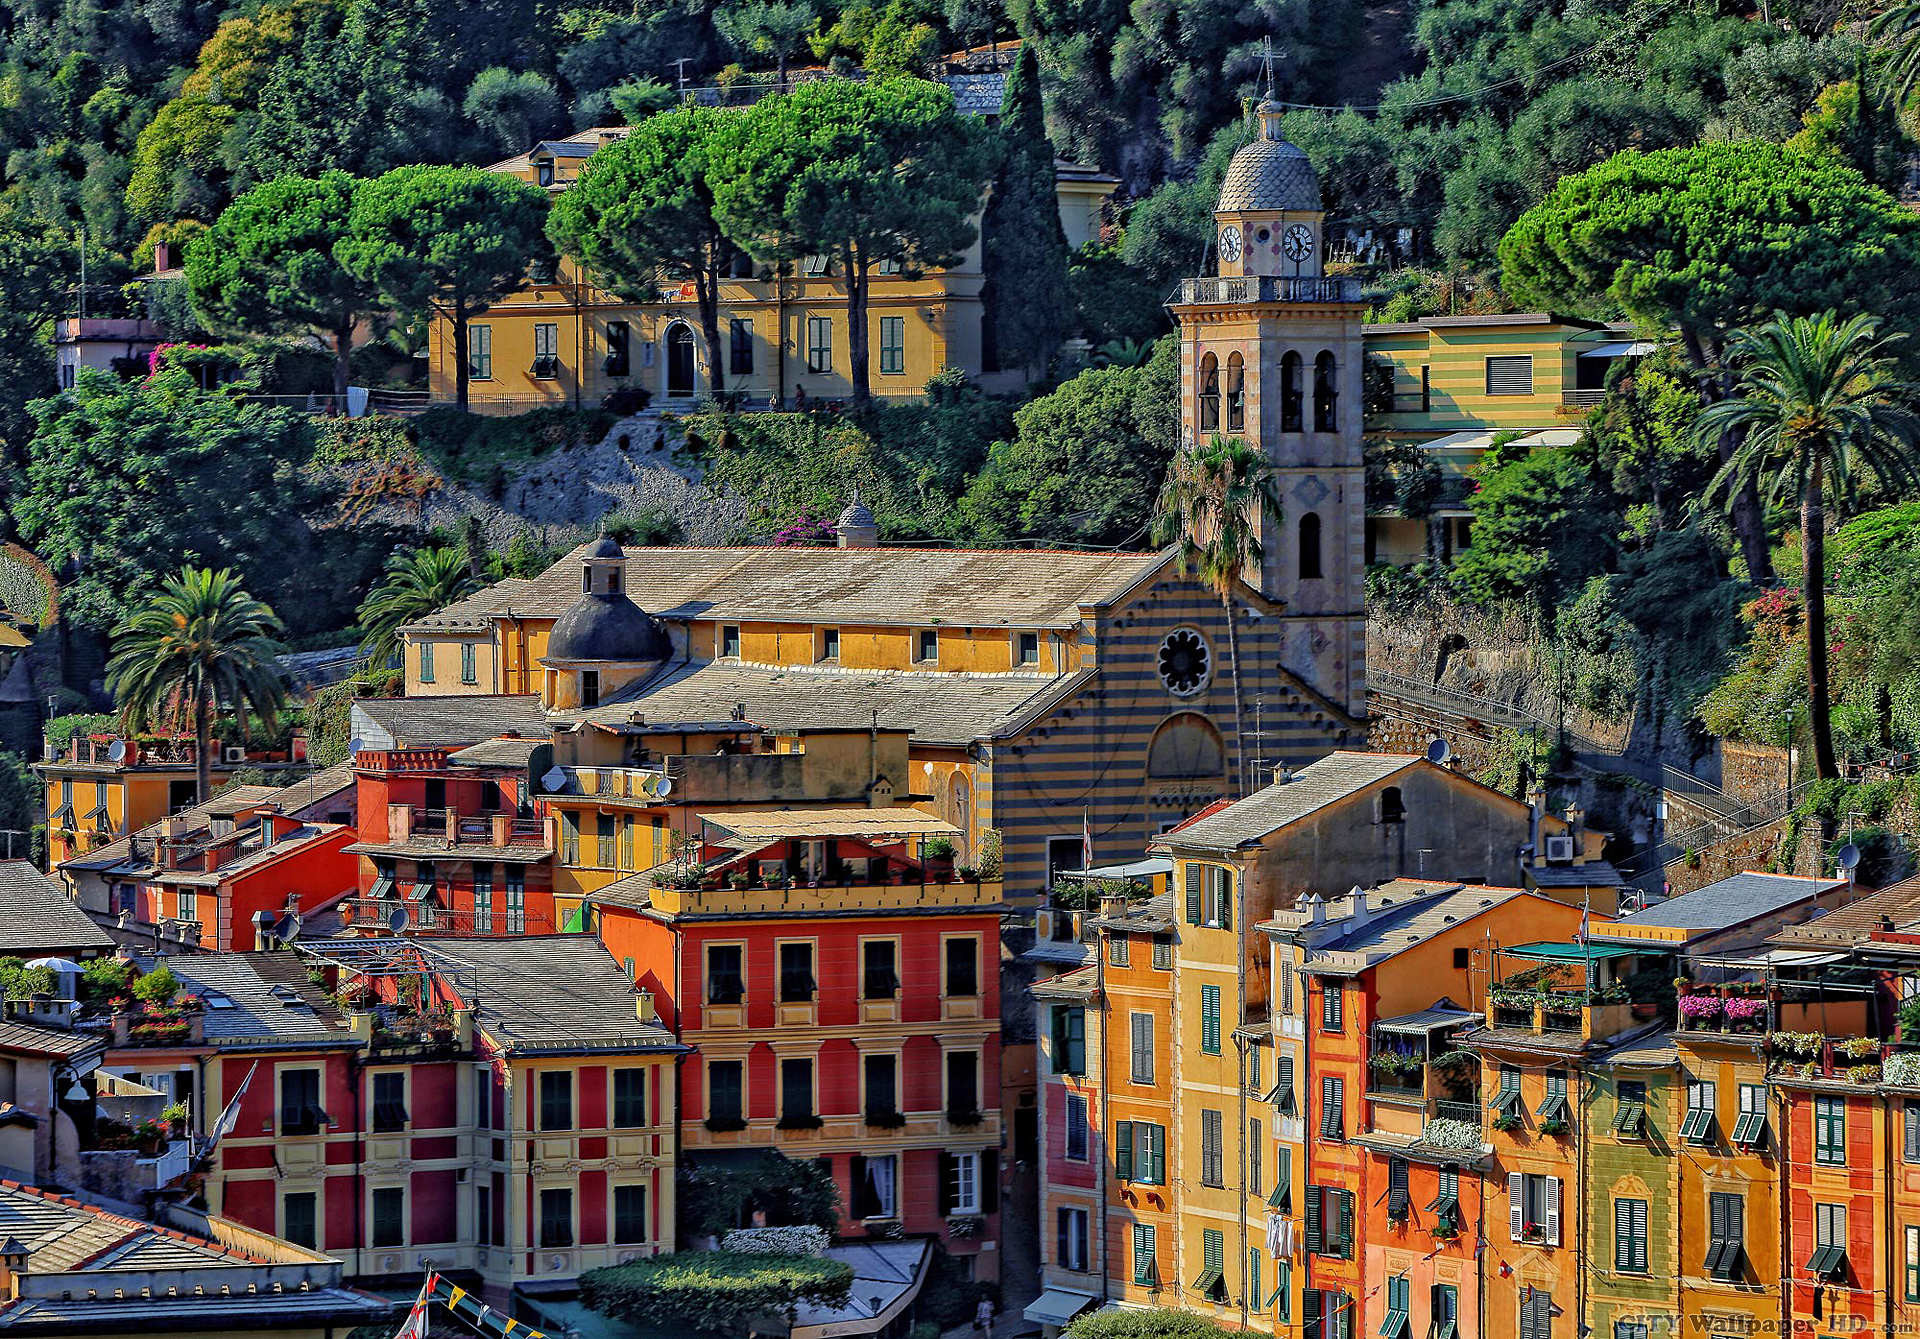 1920x1339 Portofino Italy wallpaper. Download